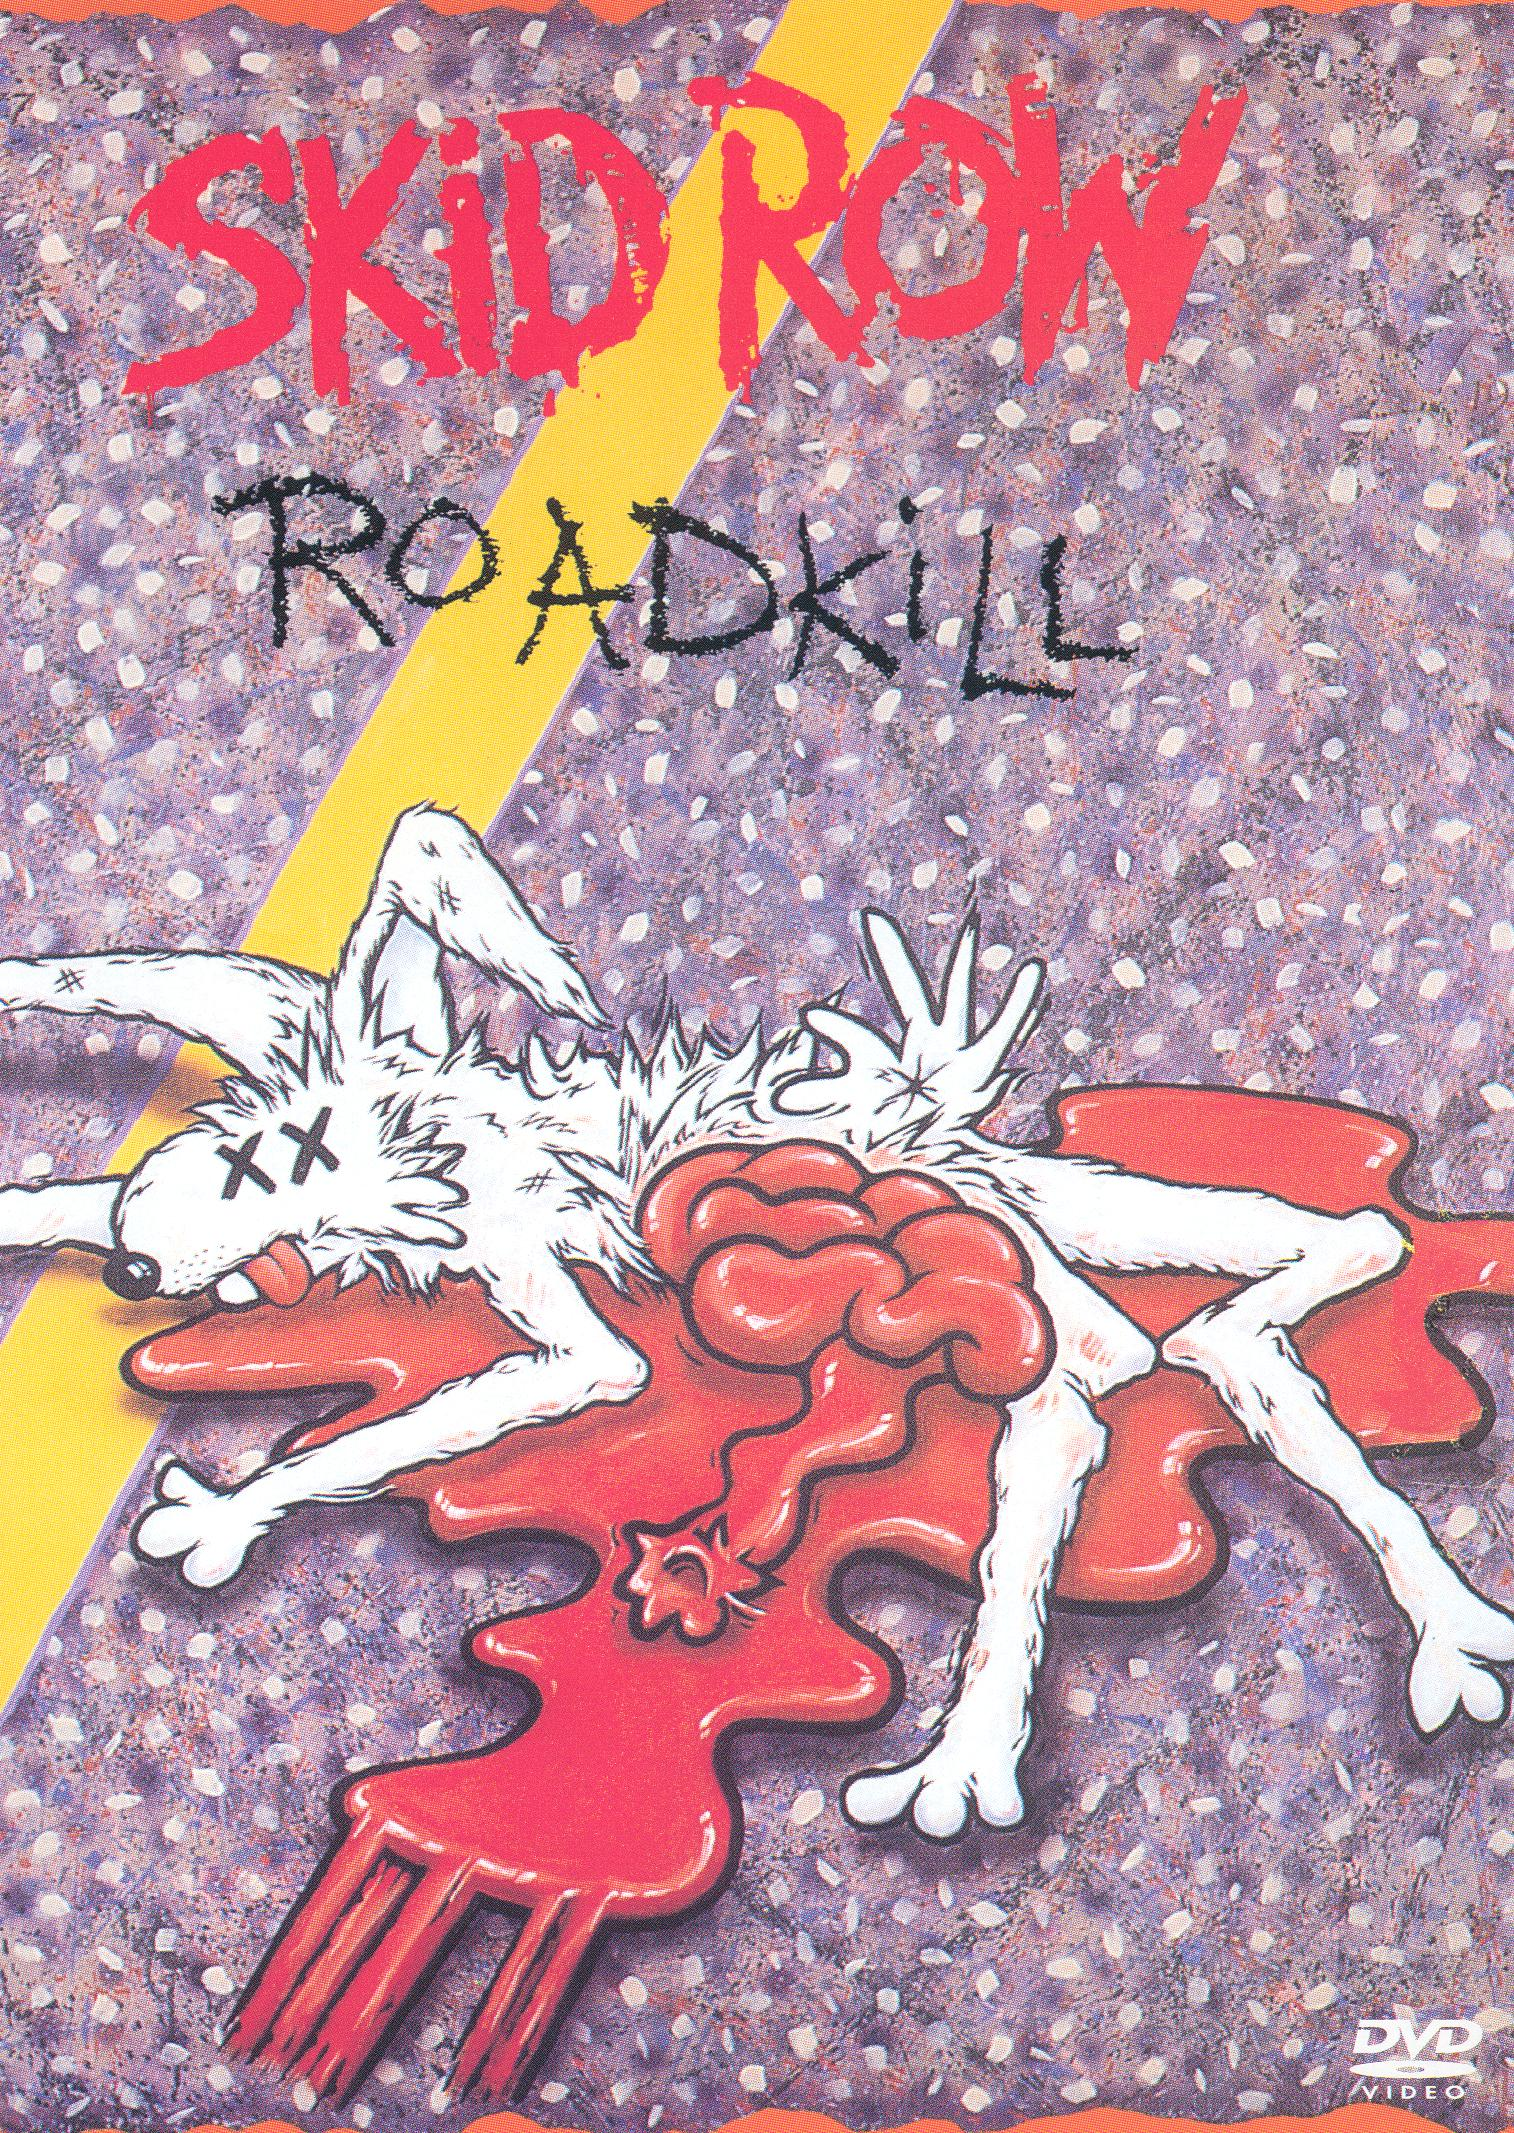 Skid Row: Roadkill